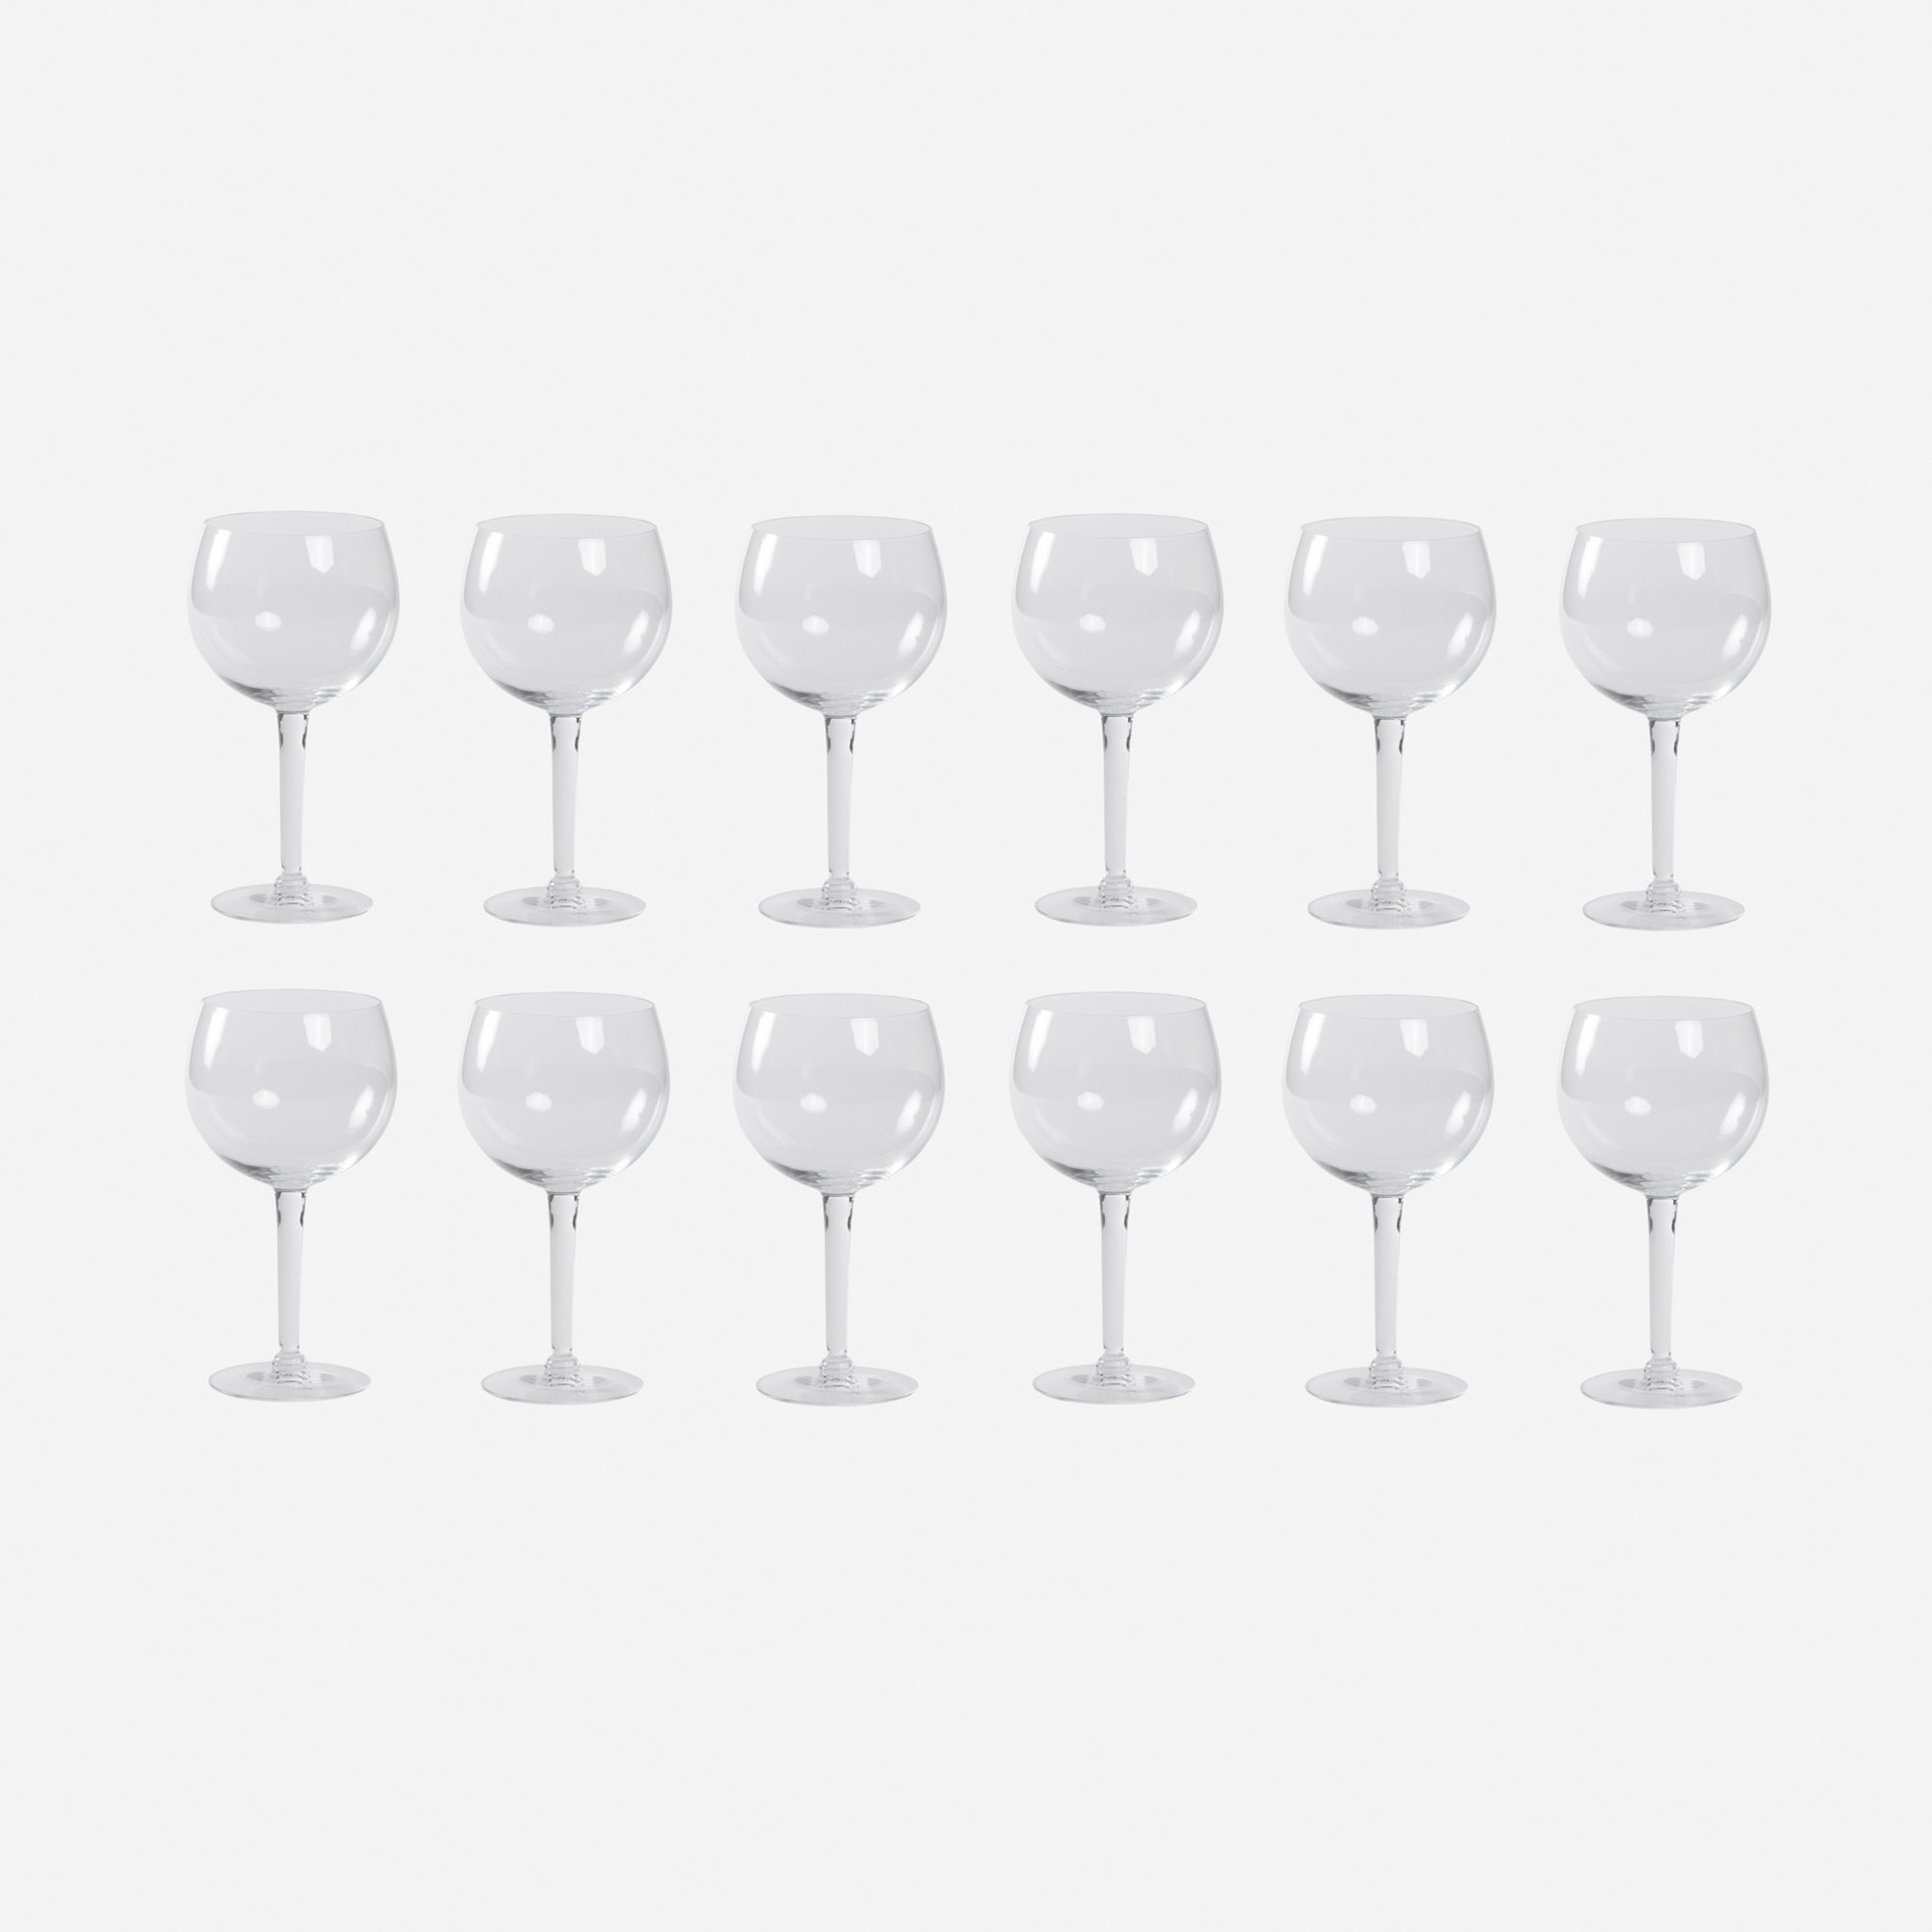 742: Garth and Ada Louise Huxtable / Red Wine glasses from The Four Seasons, set of twelve (1 of 1)